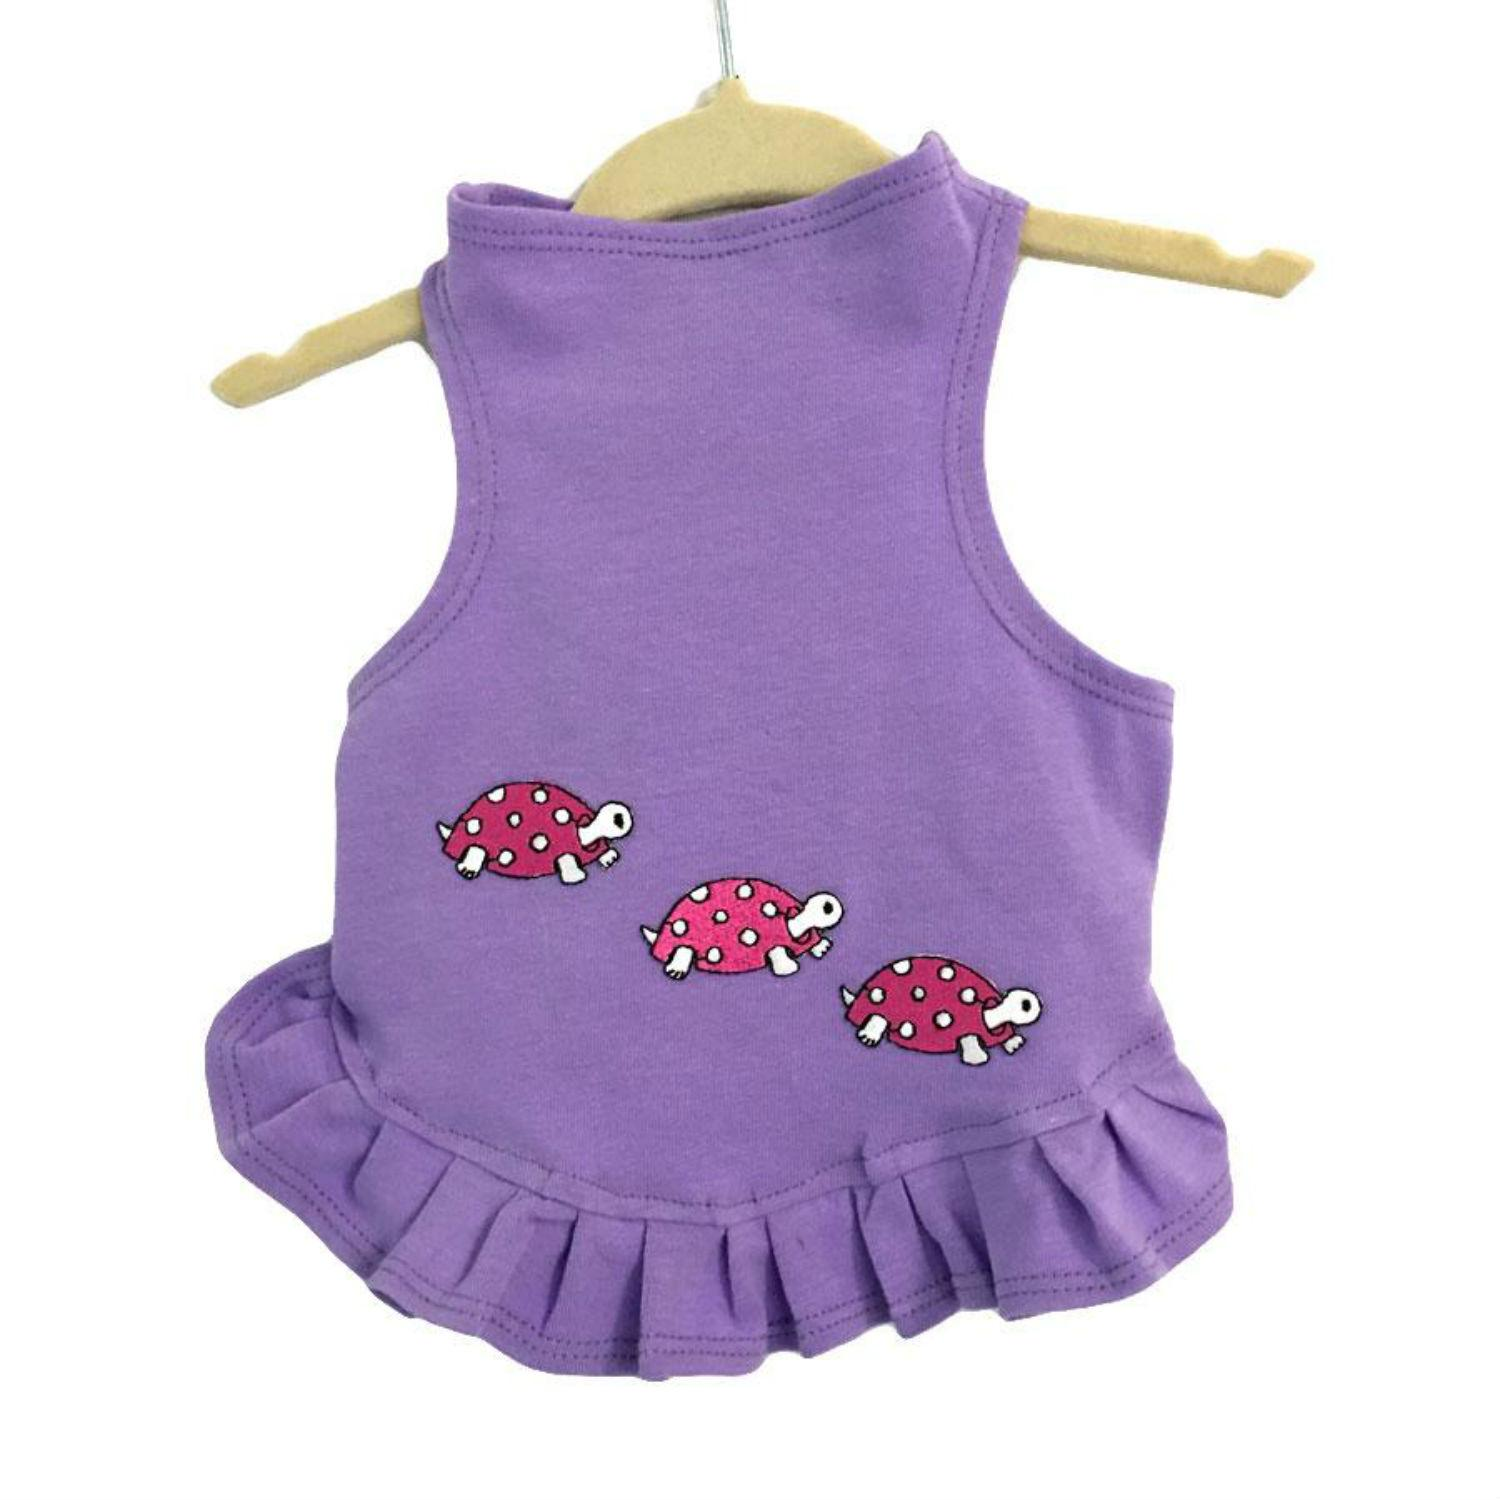 Daisy & Lucy Racing Turtles Dog Dress - Lilac